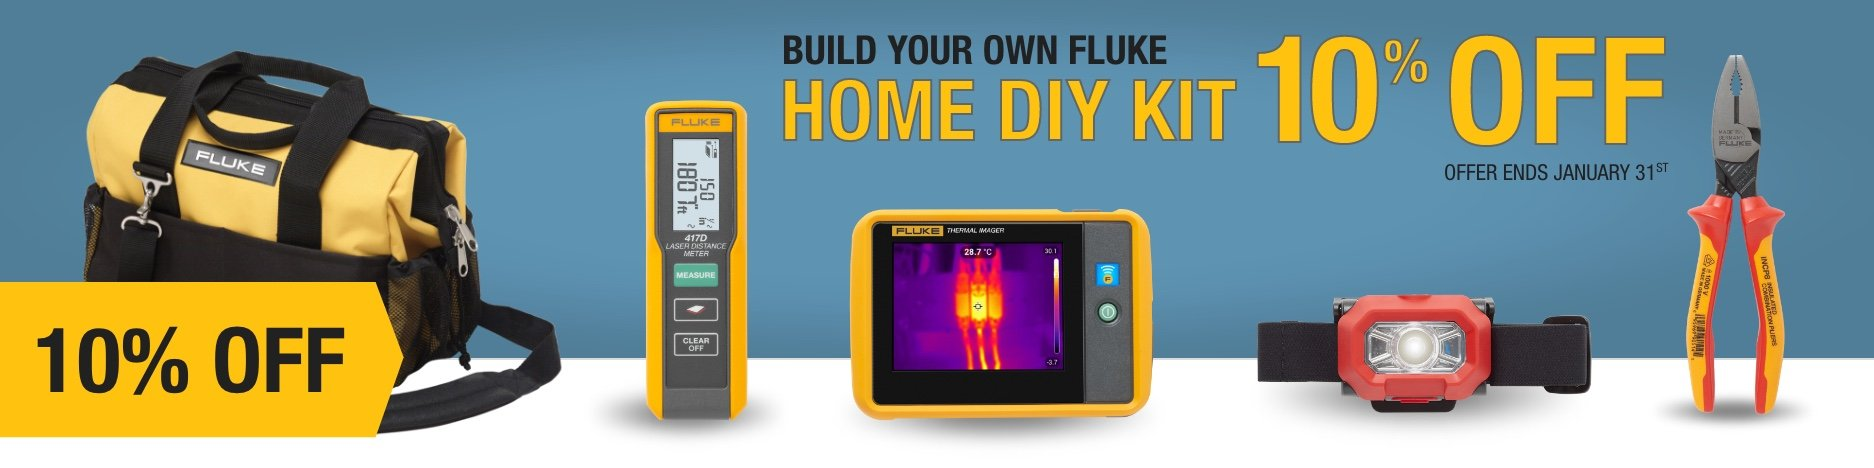 Build your own Fluke home DIY kit